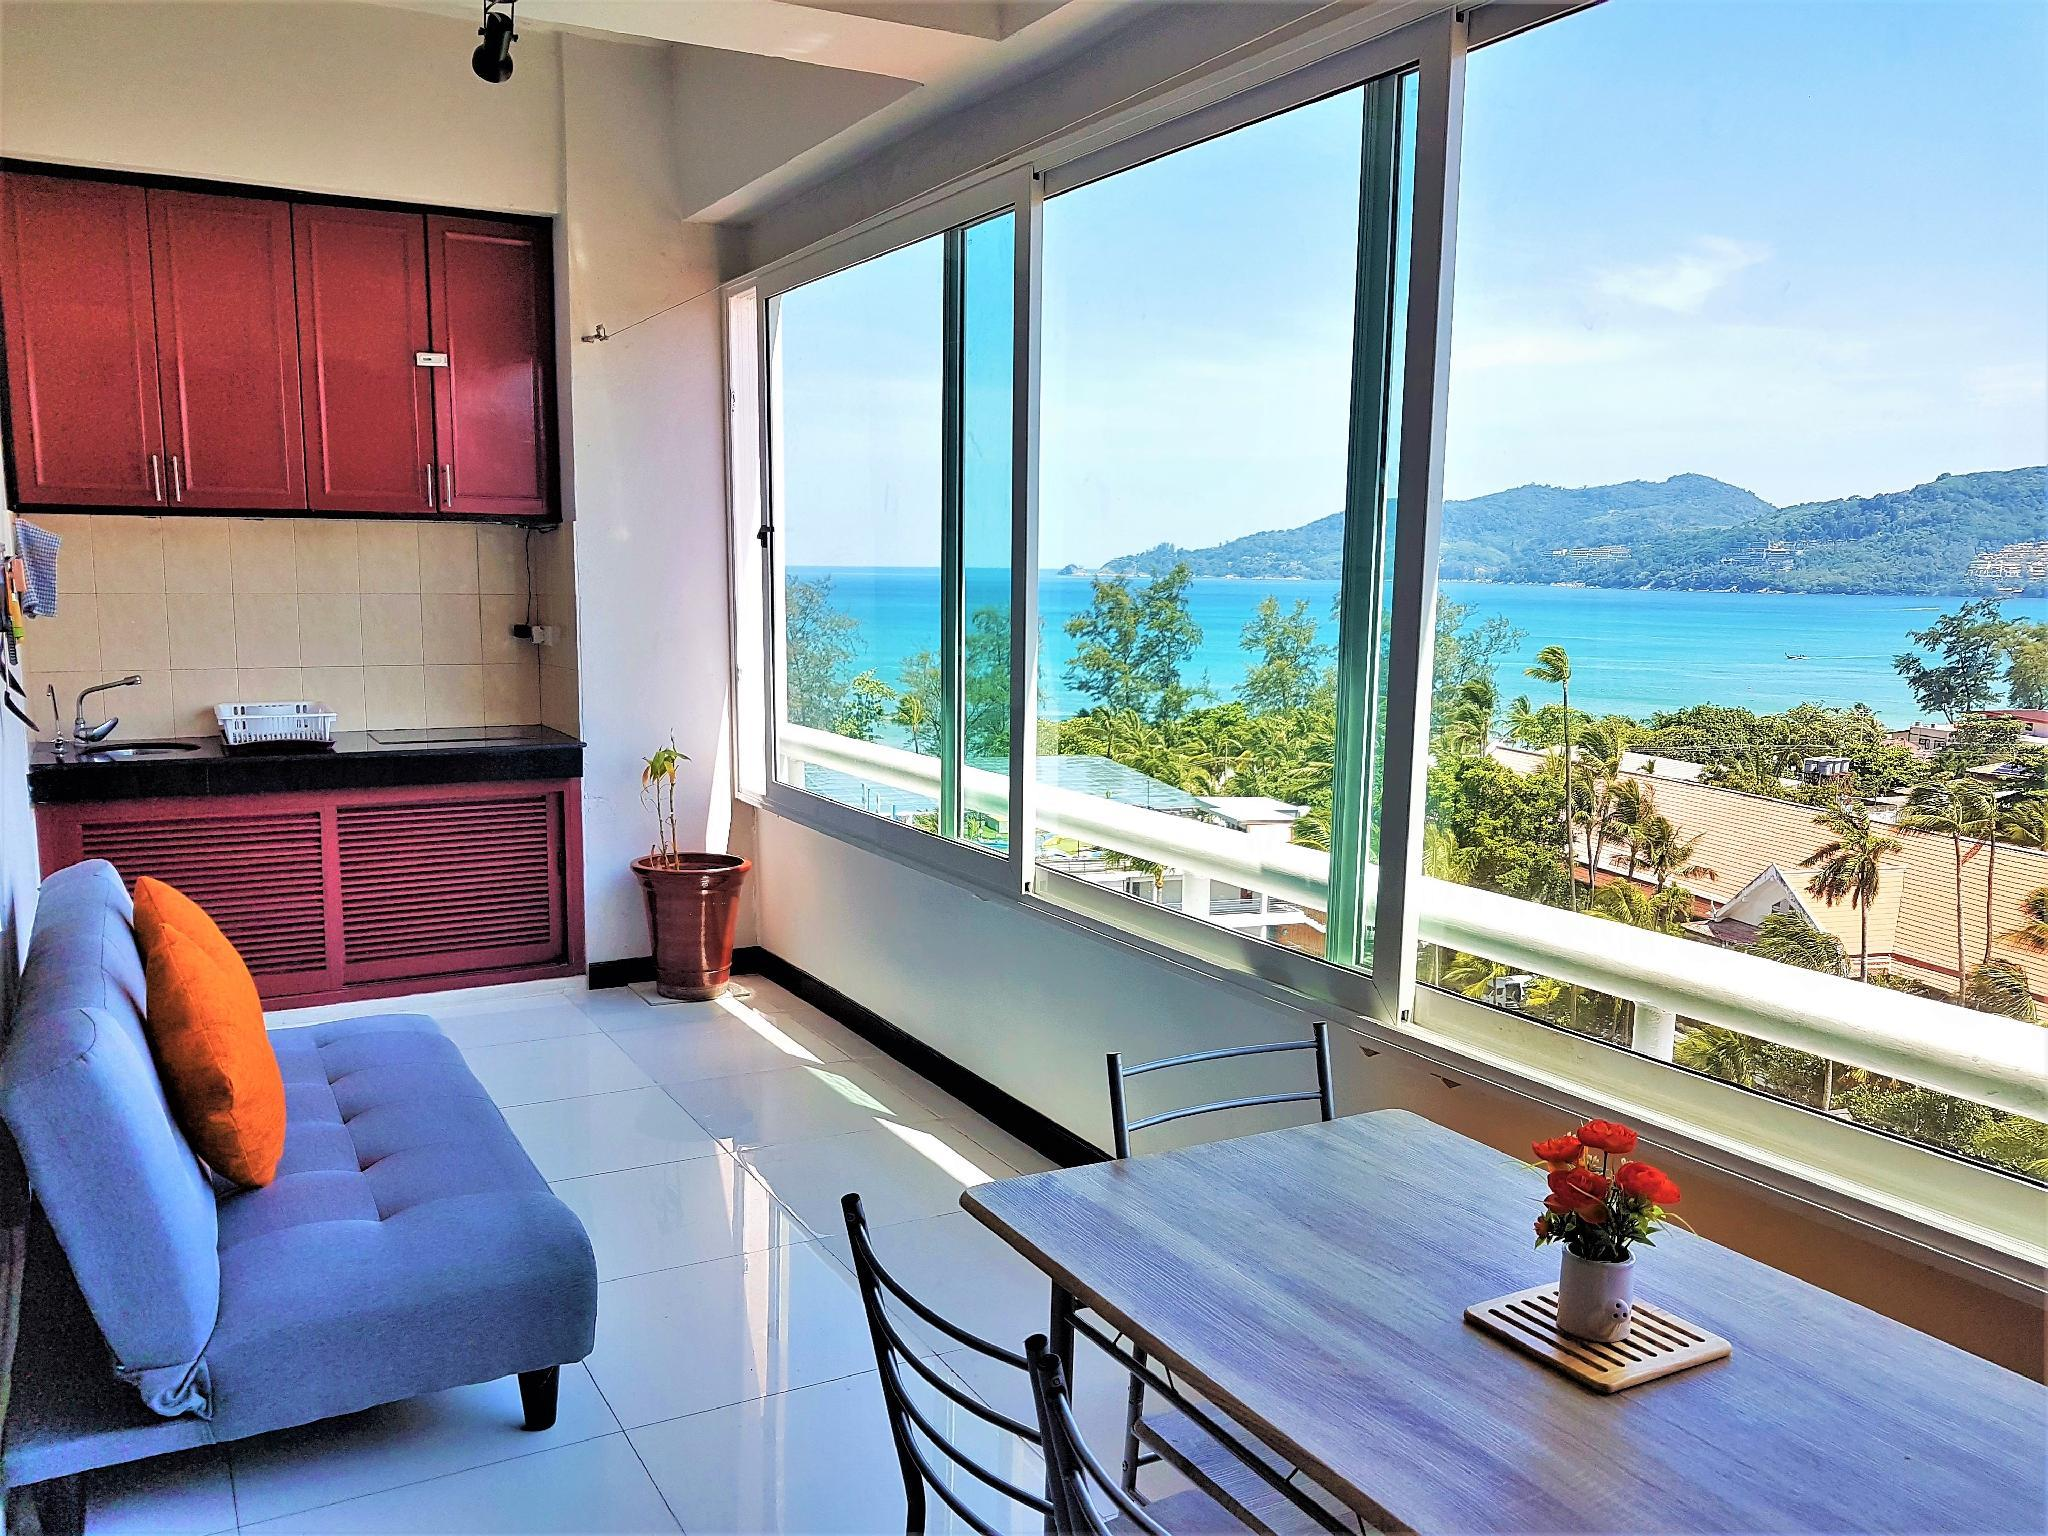 Patong Tower Patong Beach 2 By PHR